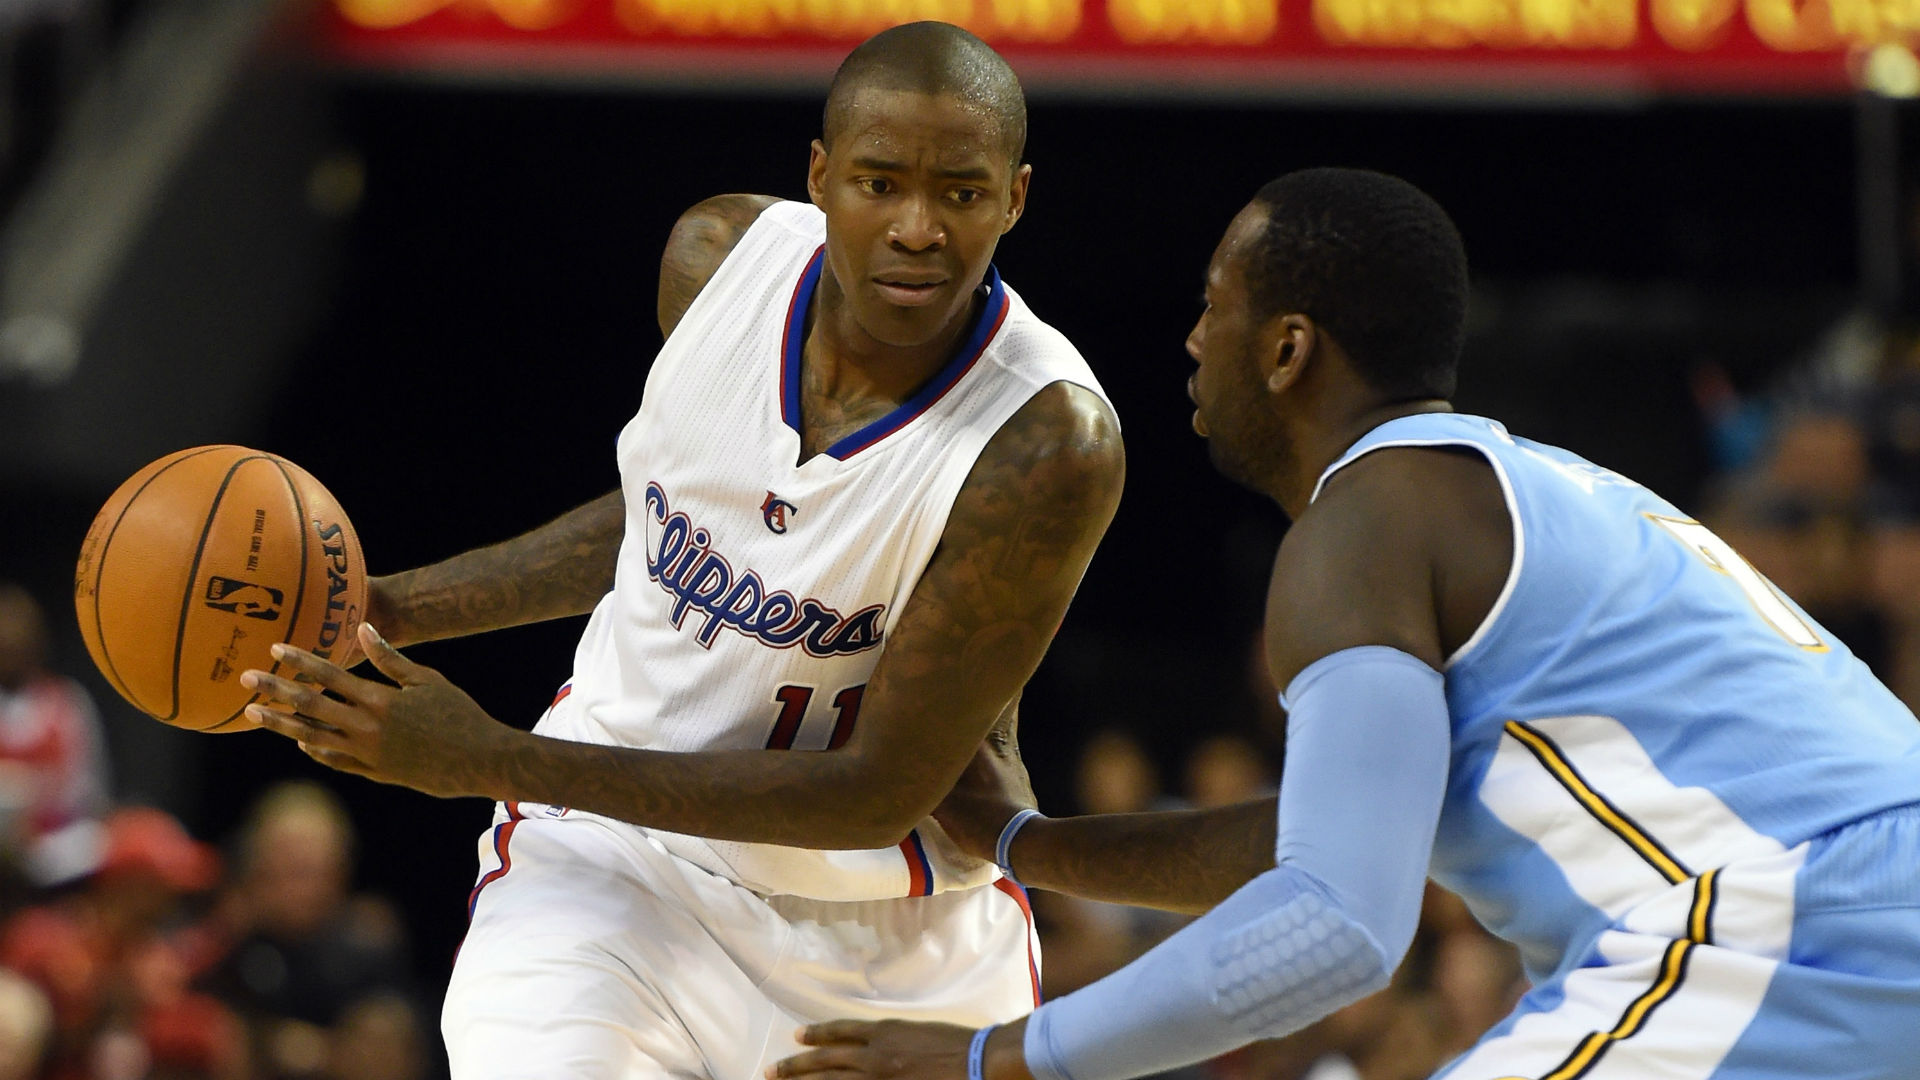 Jamal Crawford stars in new documentary J Crossover